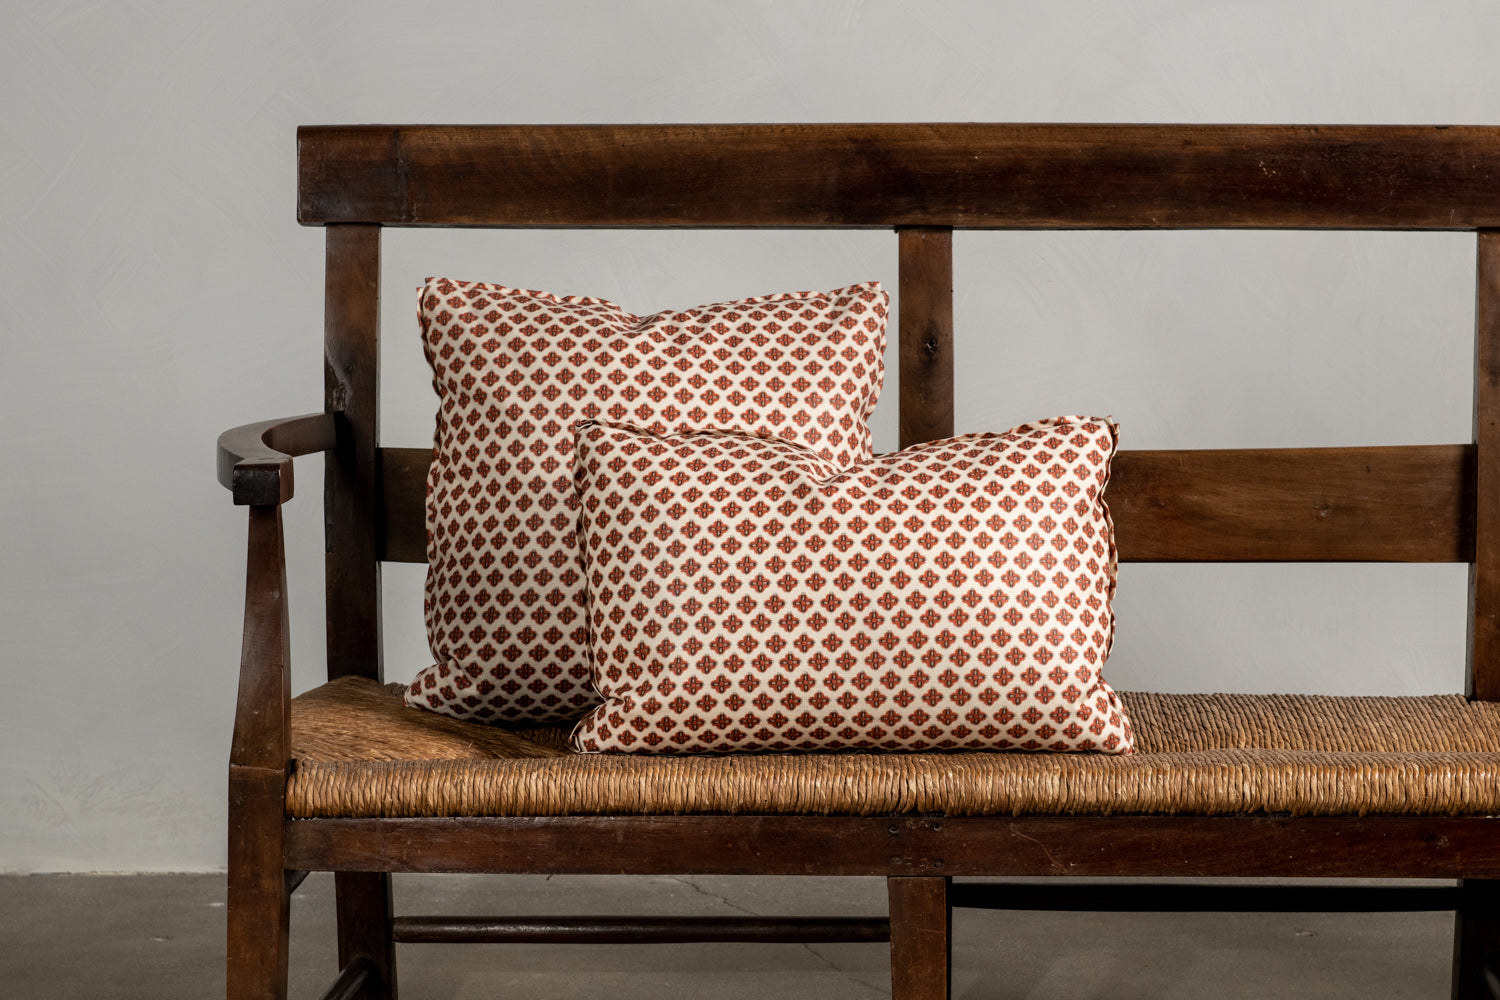 Two Nickey Kehoe Collection Knurl Brick Pillows on a bench.